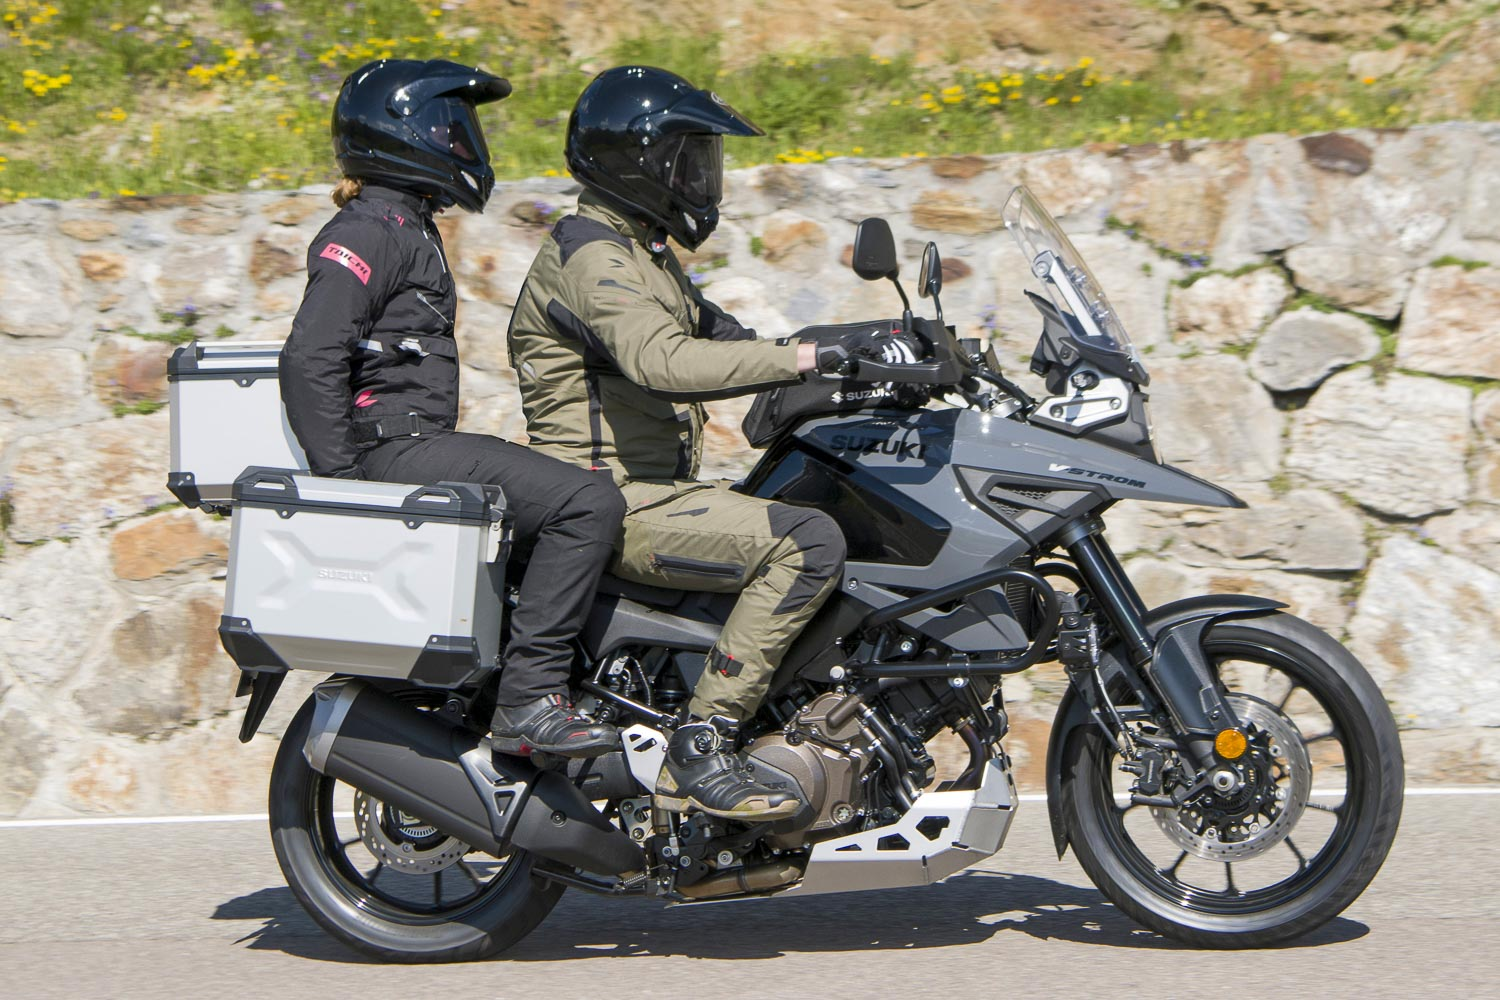 2020 Suzuki V-Strom 1050 Lineup First Look (12 Fast Facts)